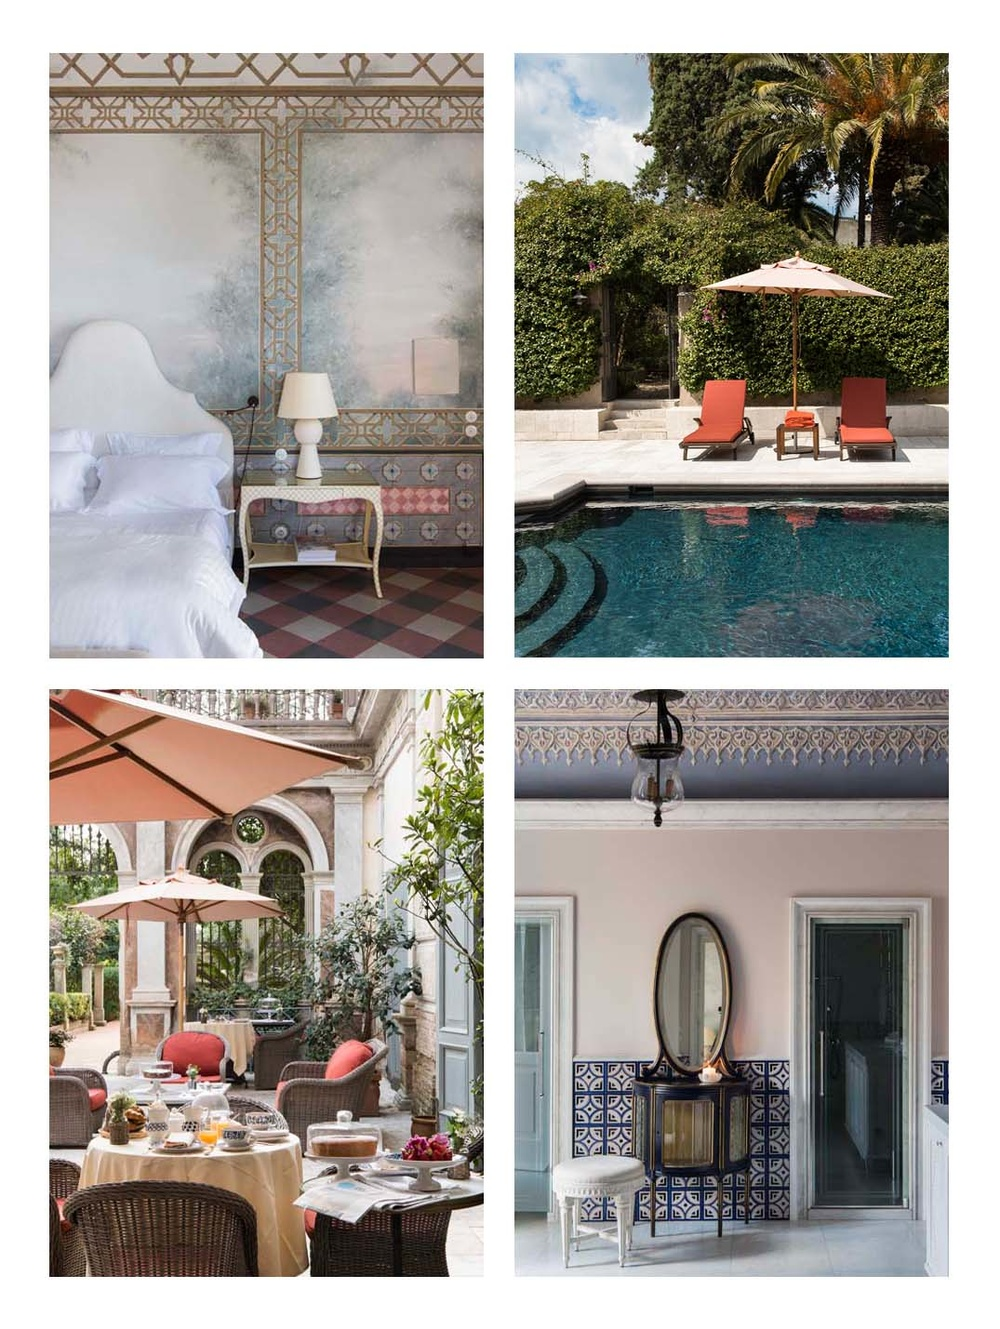 Stefano Scatà Food Lifestyle and Interiors photographer - CHIC STAYS - PALAZZO MARGHERITA